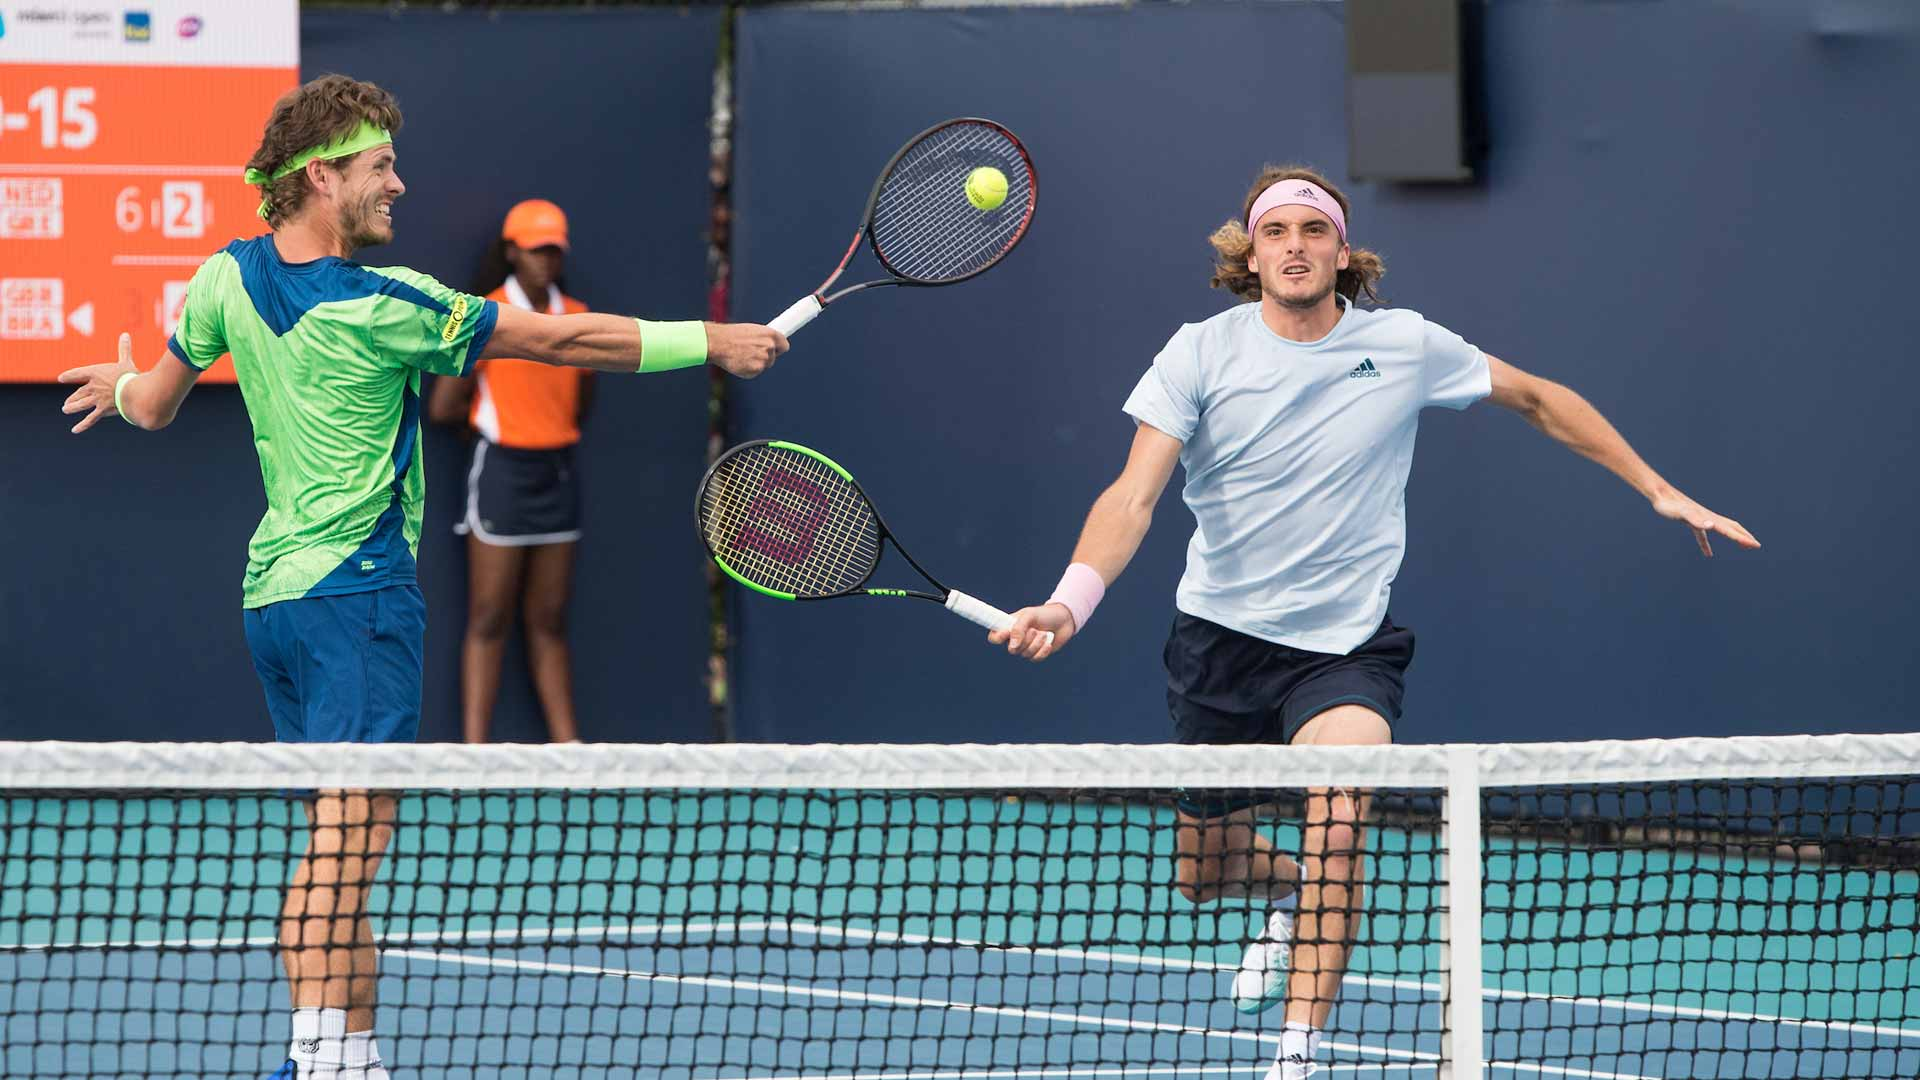 Tsitsipas advances to the Semis of Men's Doubles